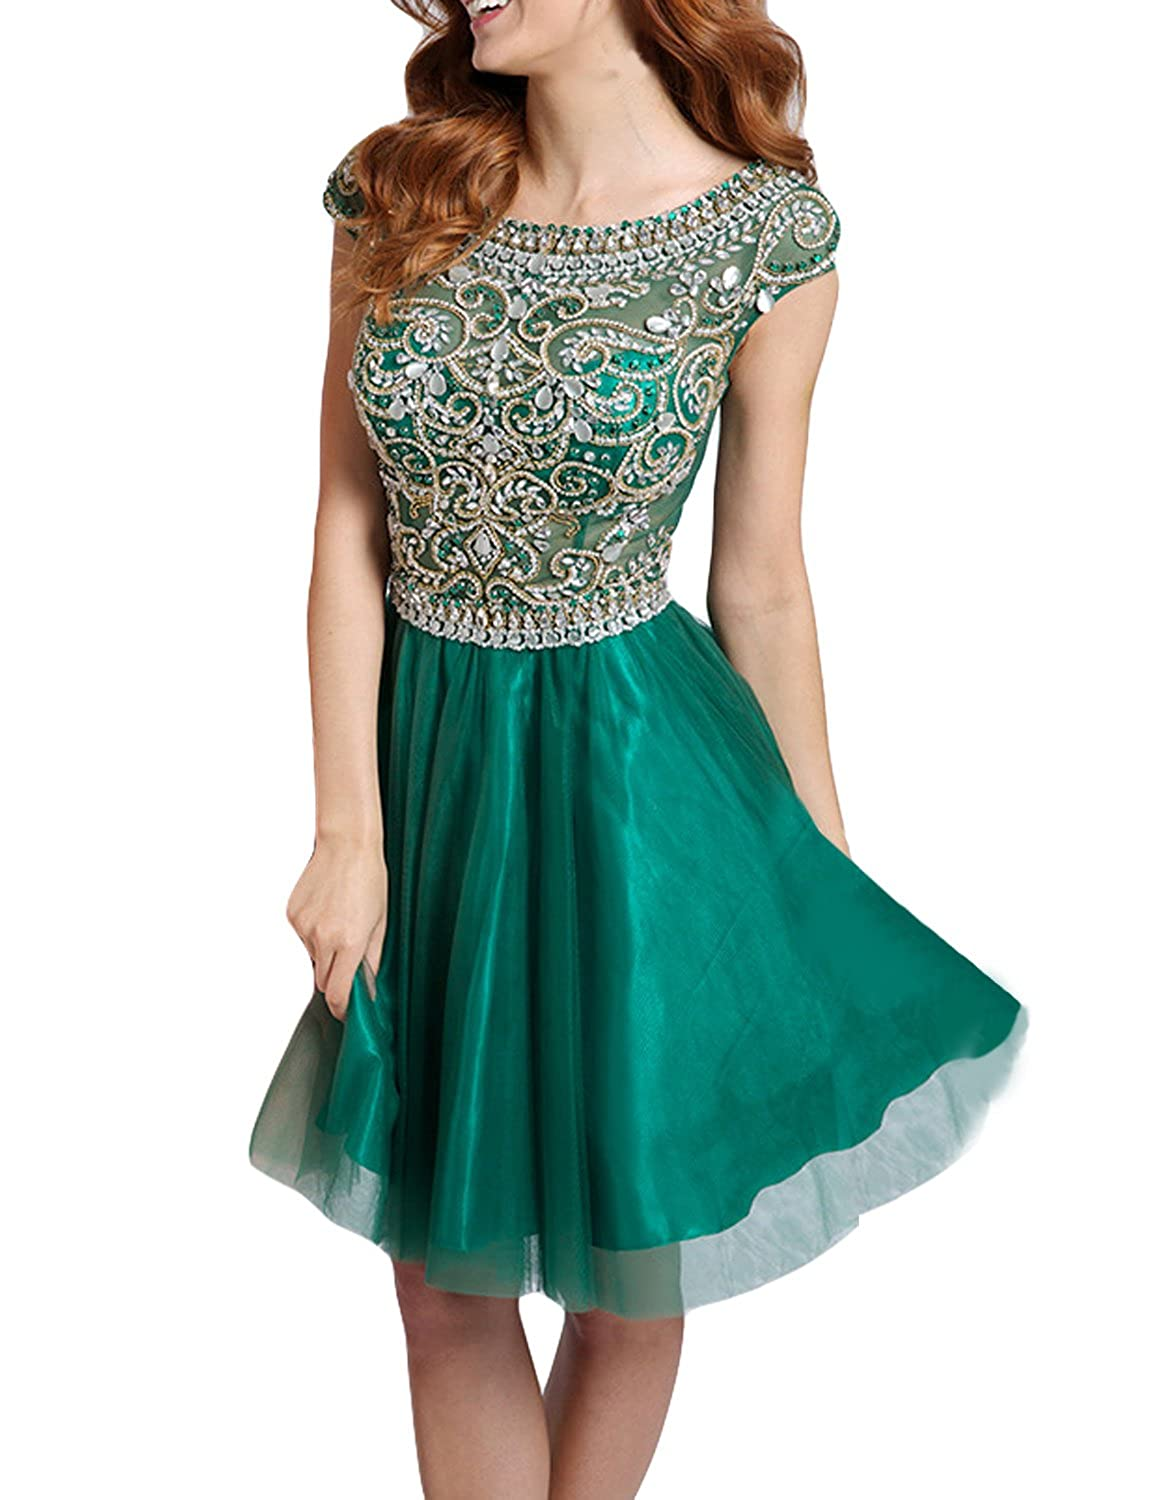 SeasonMall Women's Short Prom Dresses A Line Scoop Tulle Homecoming Dresses